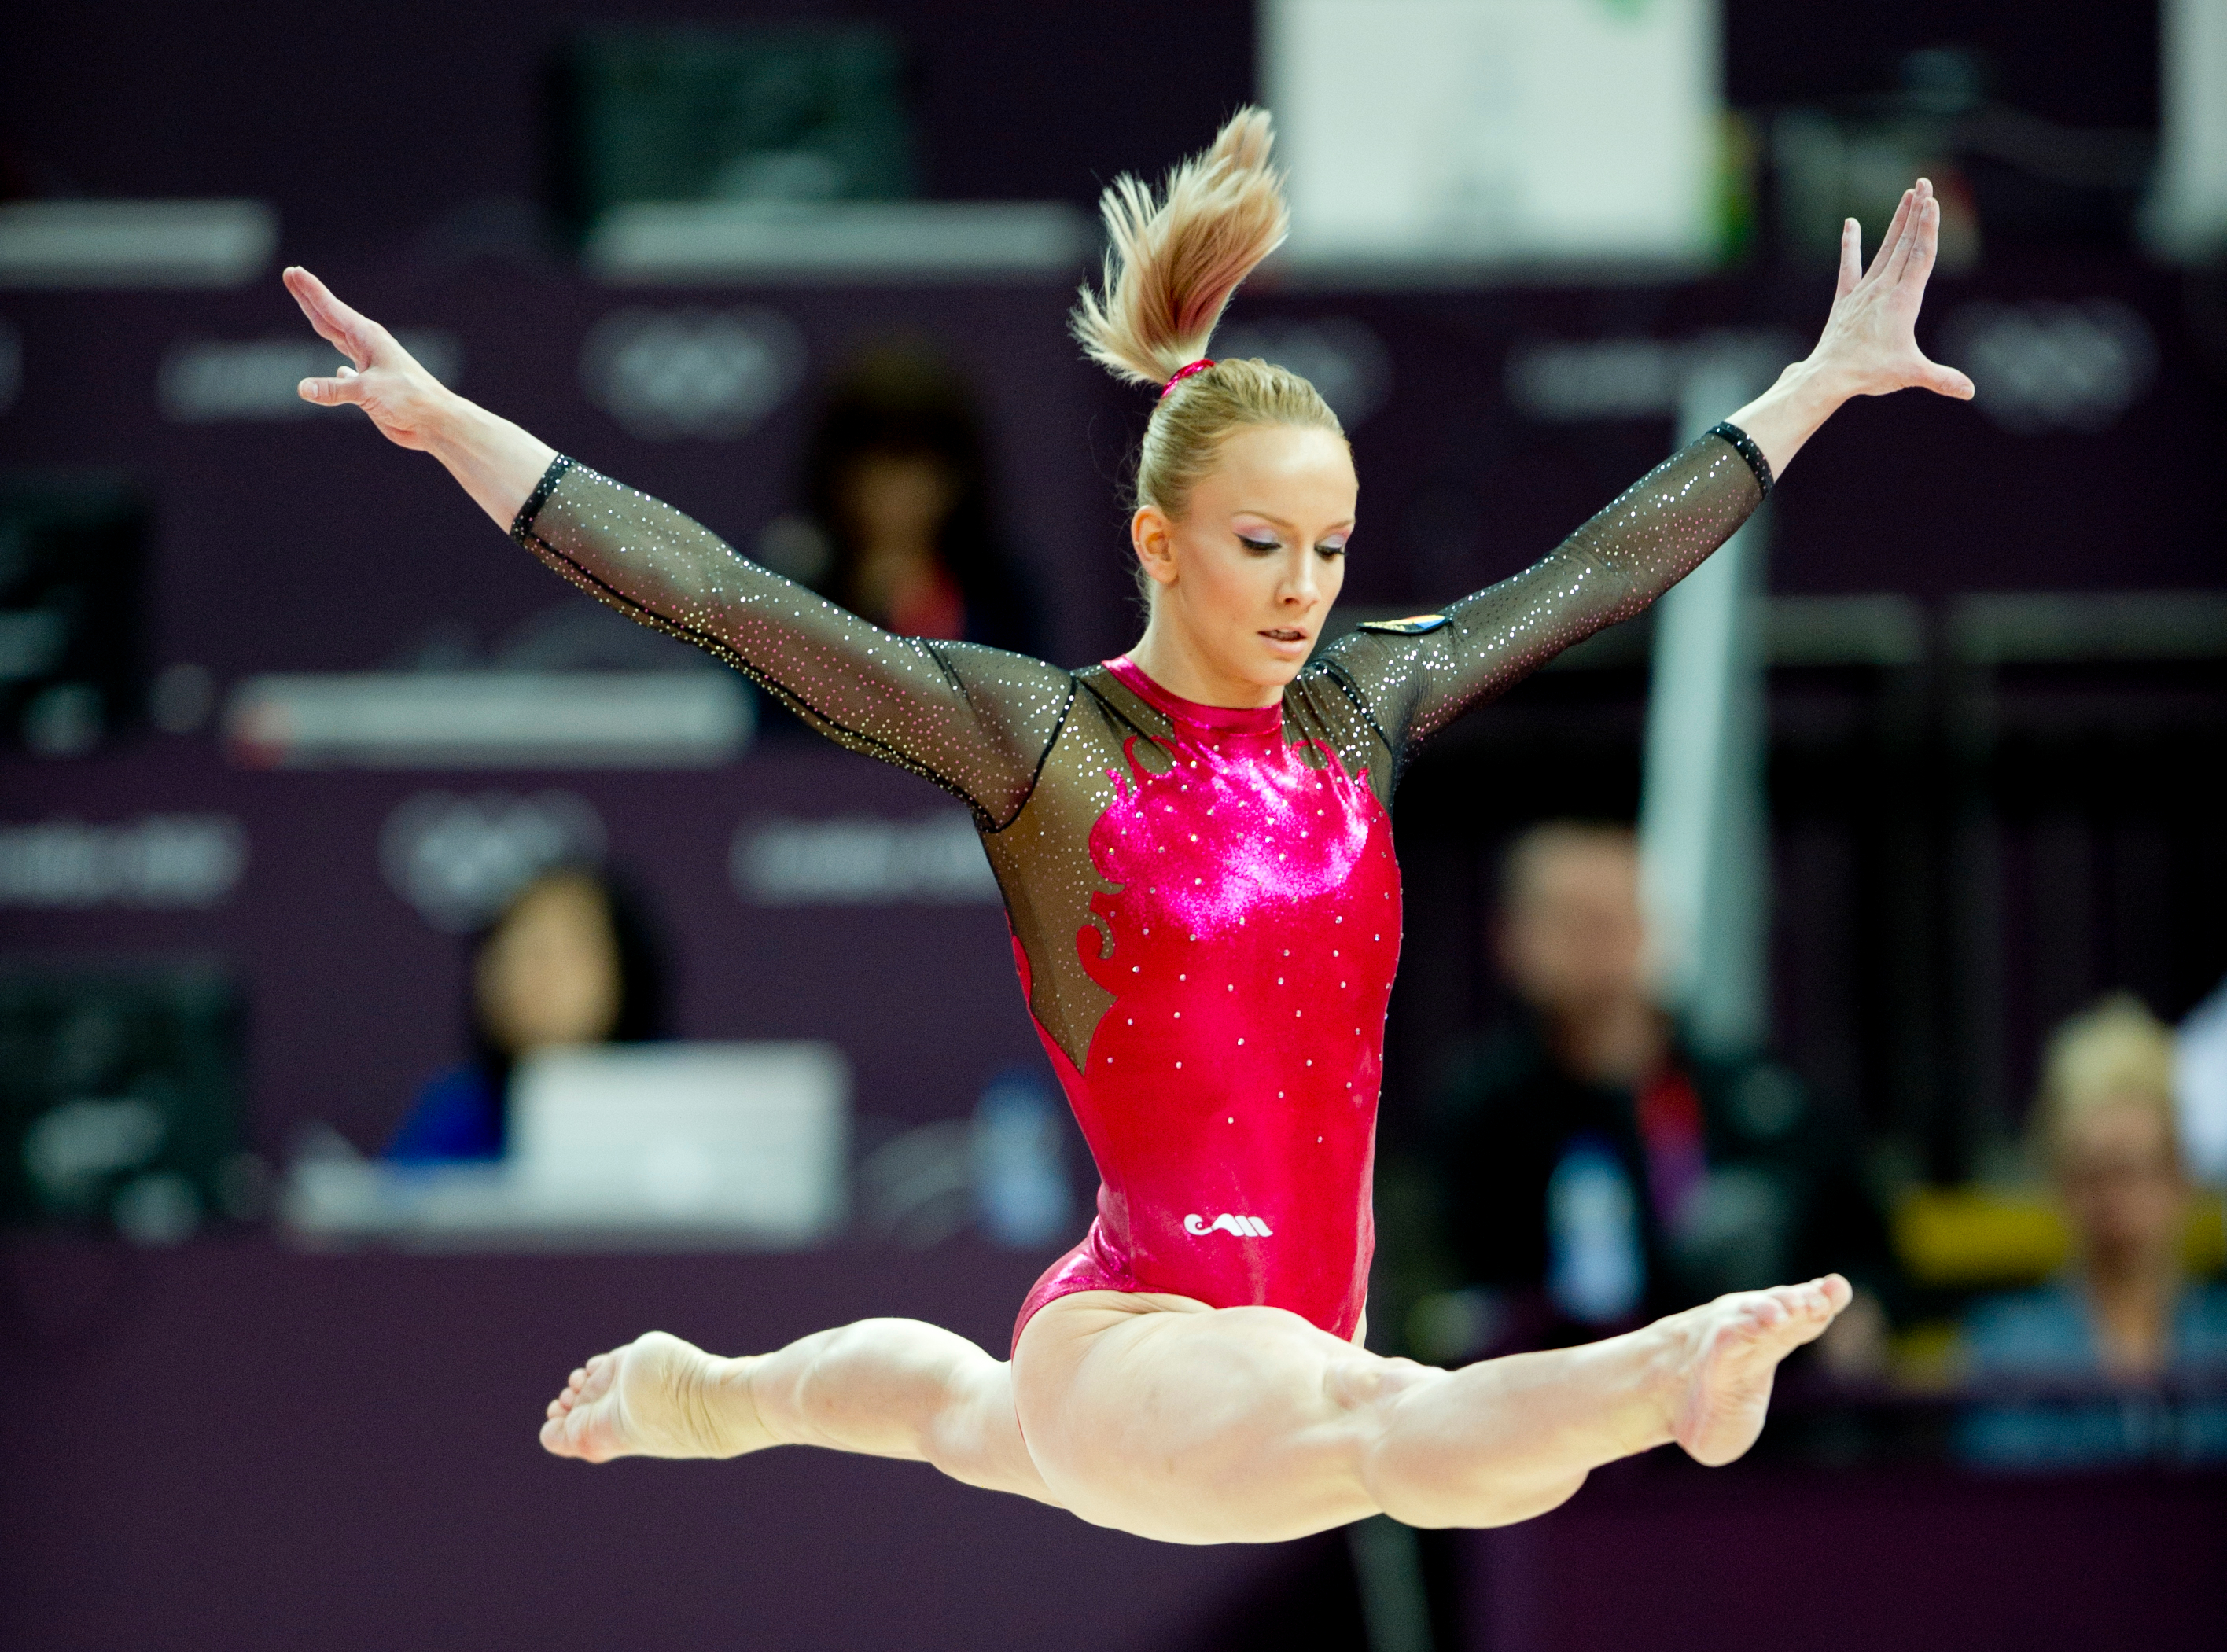 Gymnastics Full HD Wallpaper And Background Image